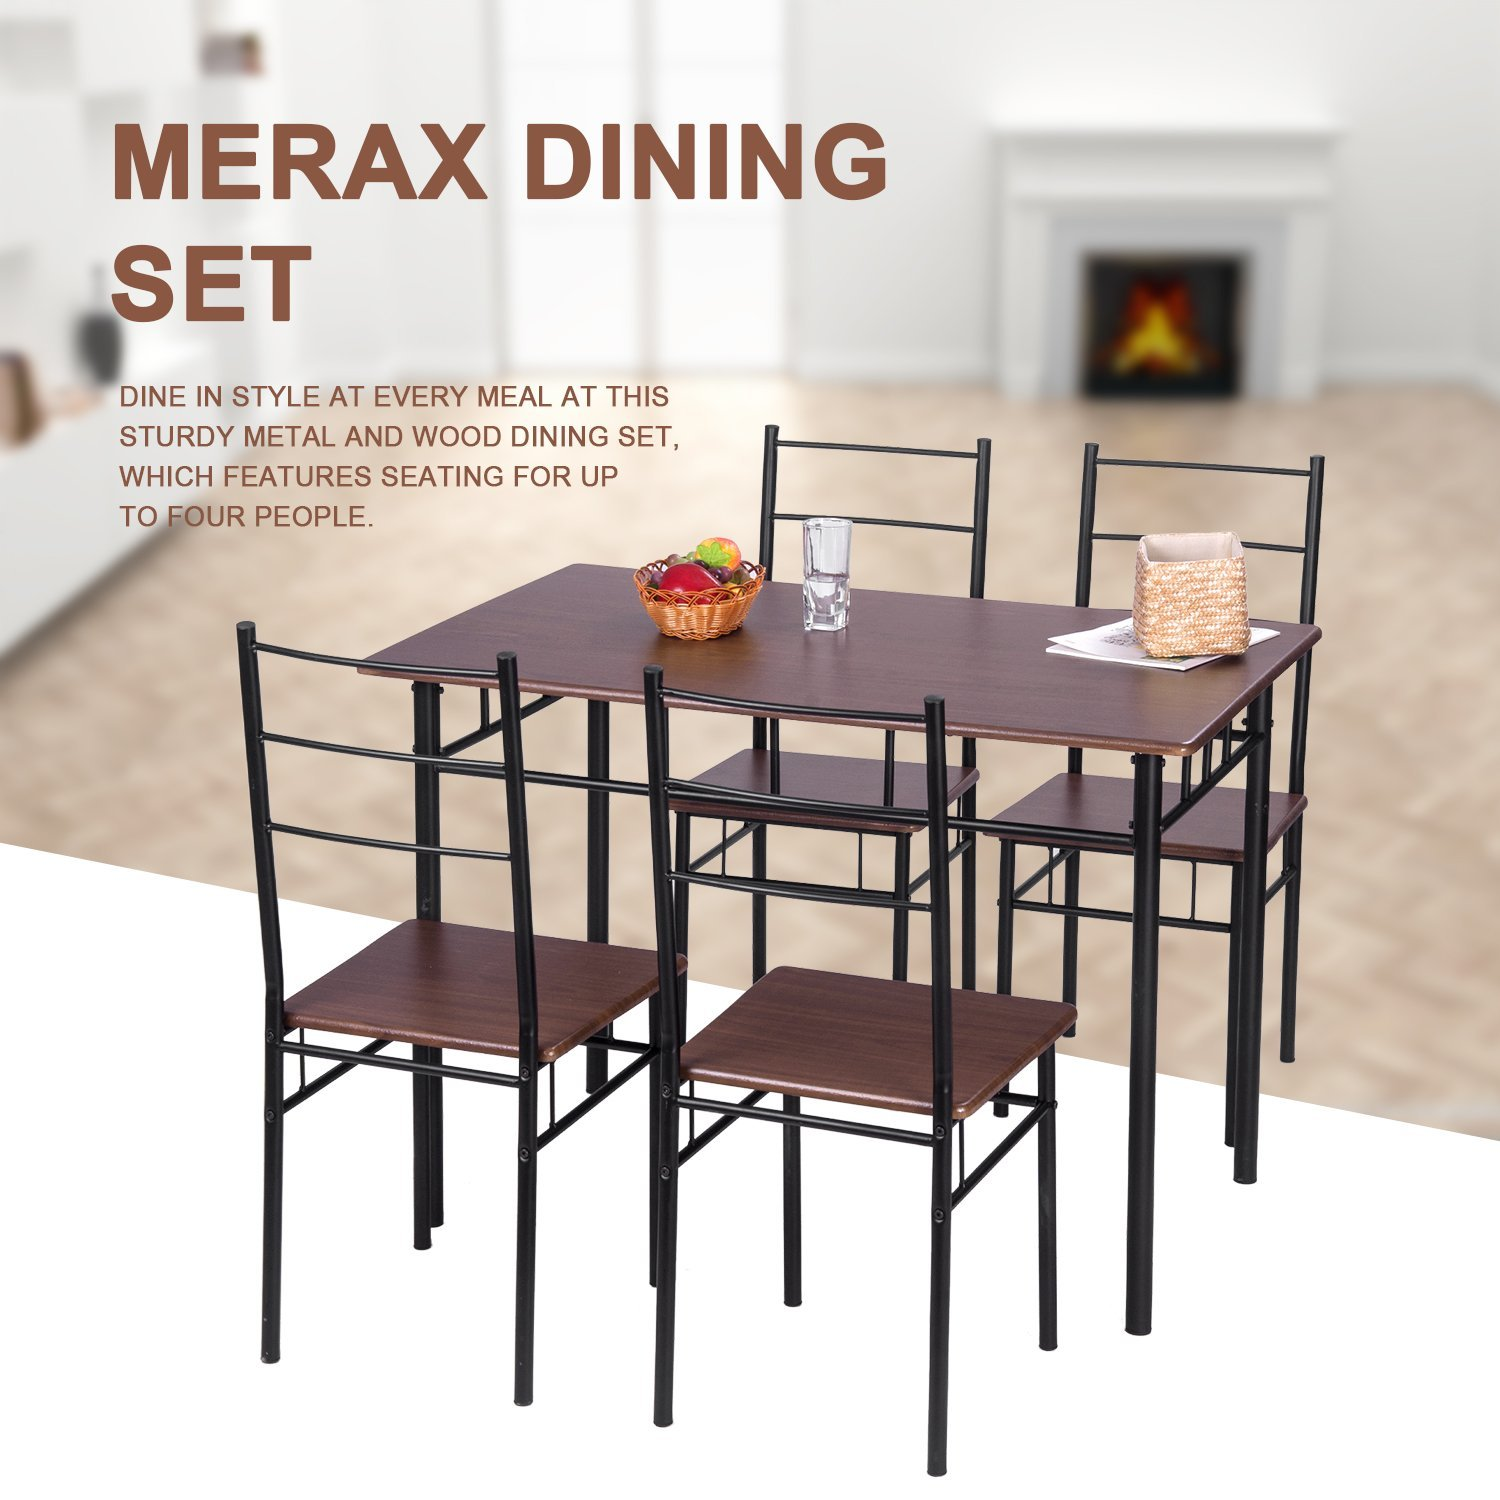 Harperu0026Bright Designs 5 Piece Wood And Metal Dining Set Table And 4 Chairs,  Multiple Finishes   Walmart.com